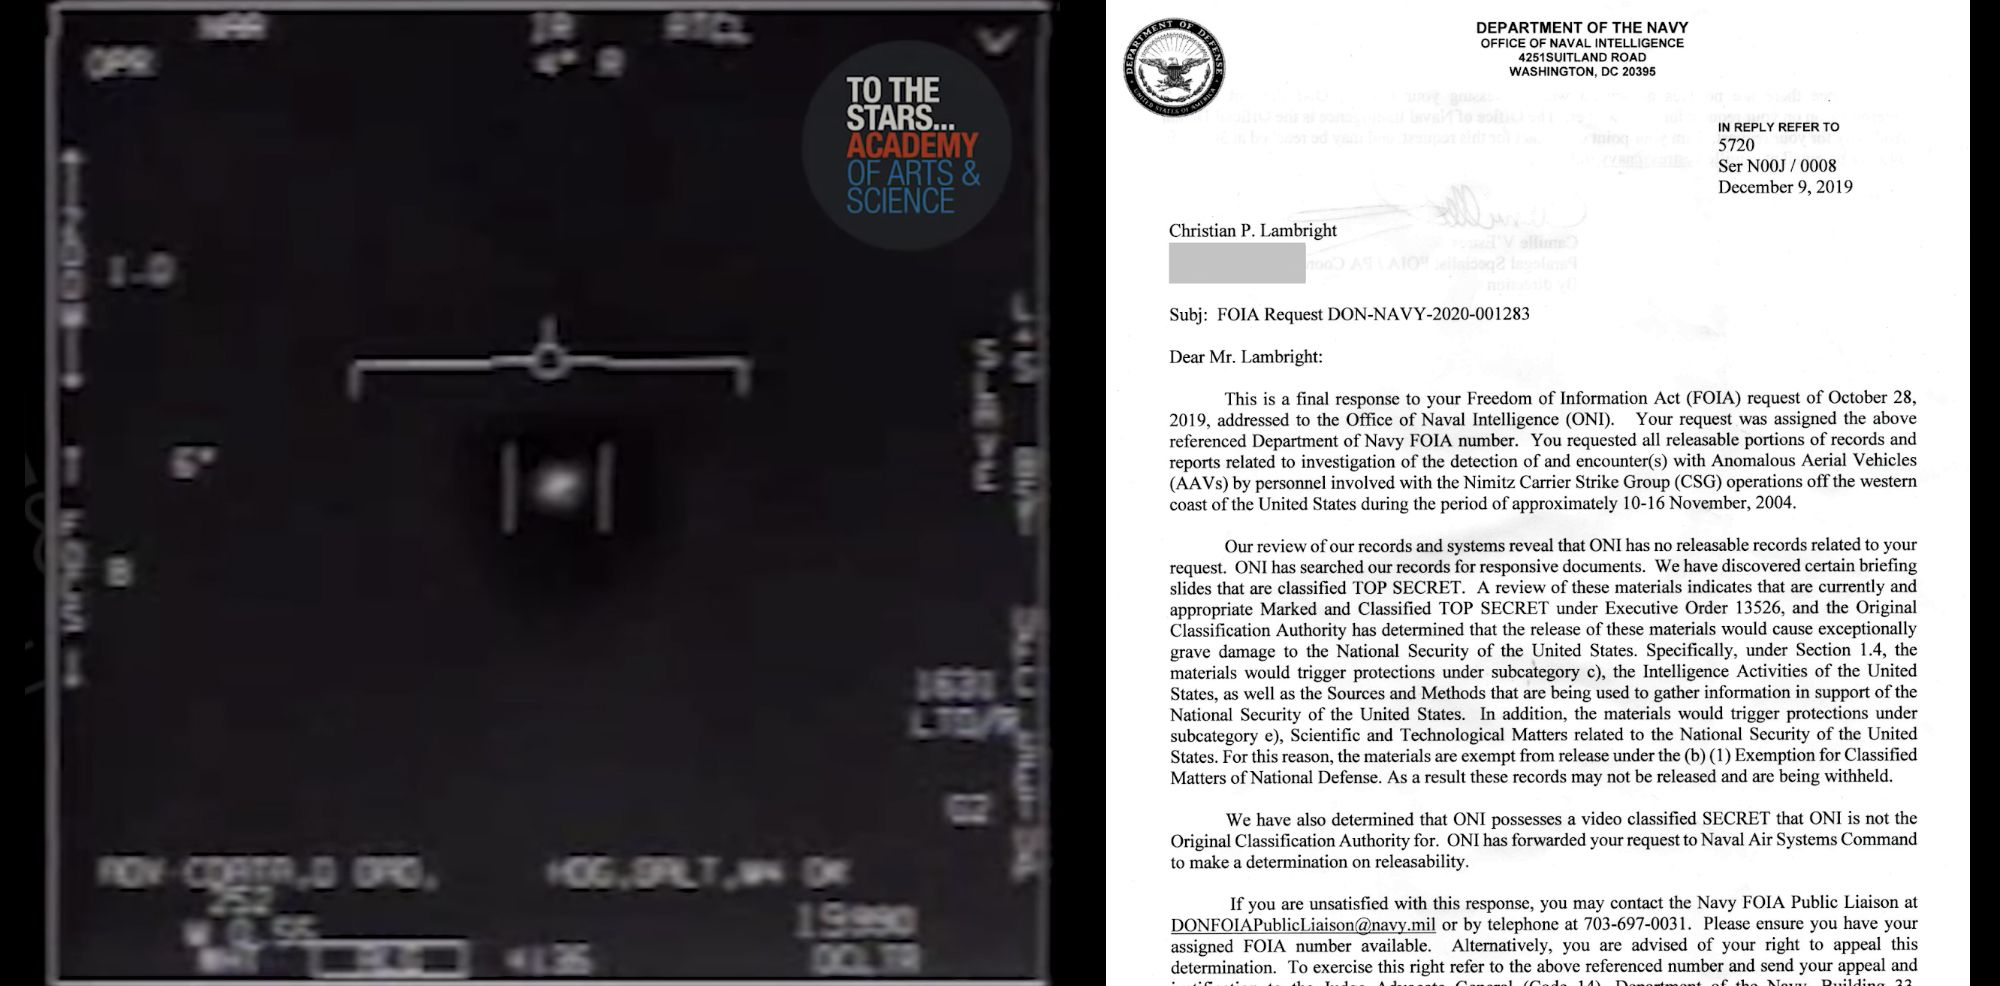 Navy Says Releasing UFO Videos Would 'Gravely Damage' National Security